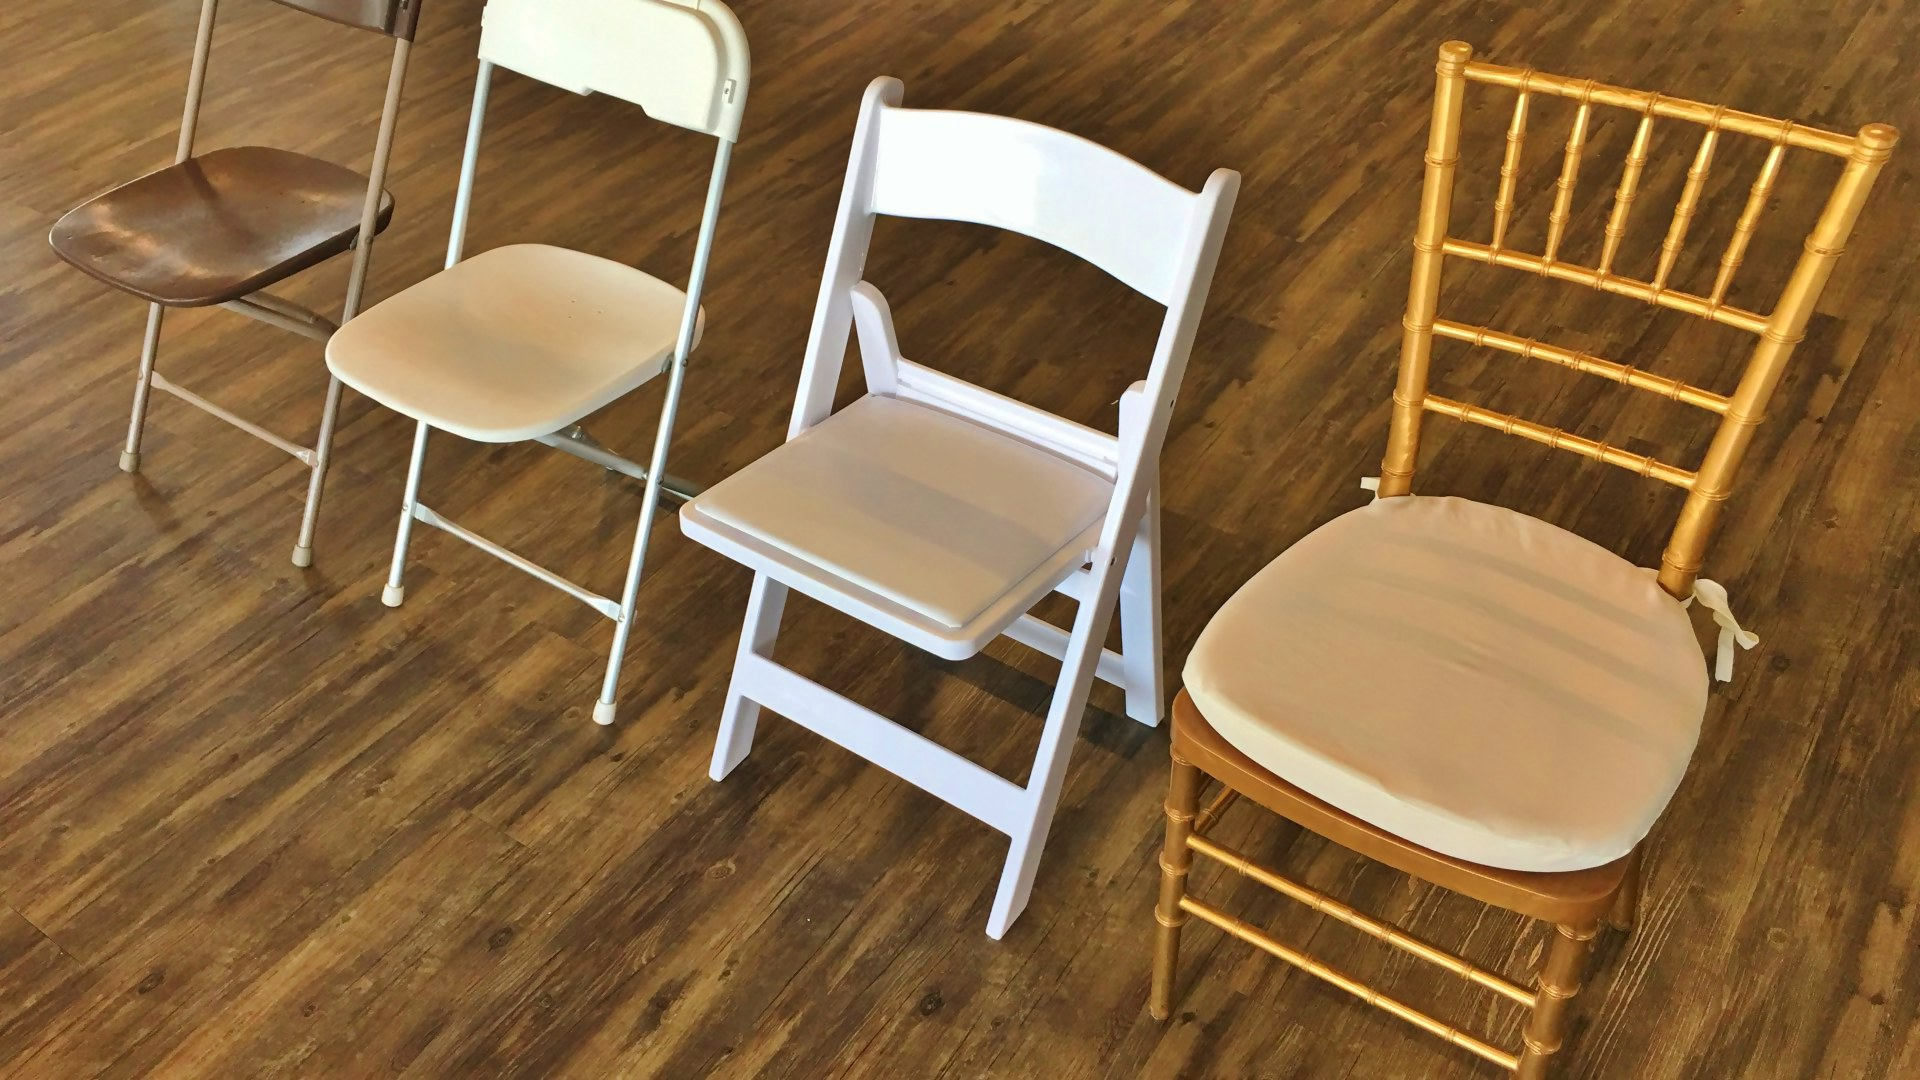 Seating available for rent in Myerstown, PA